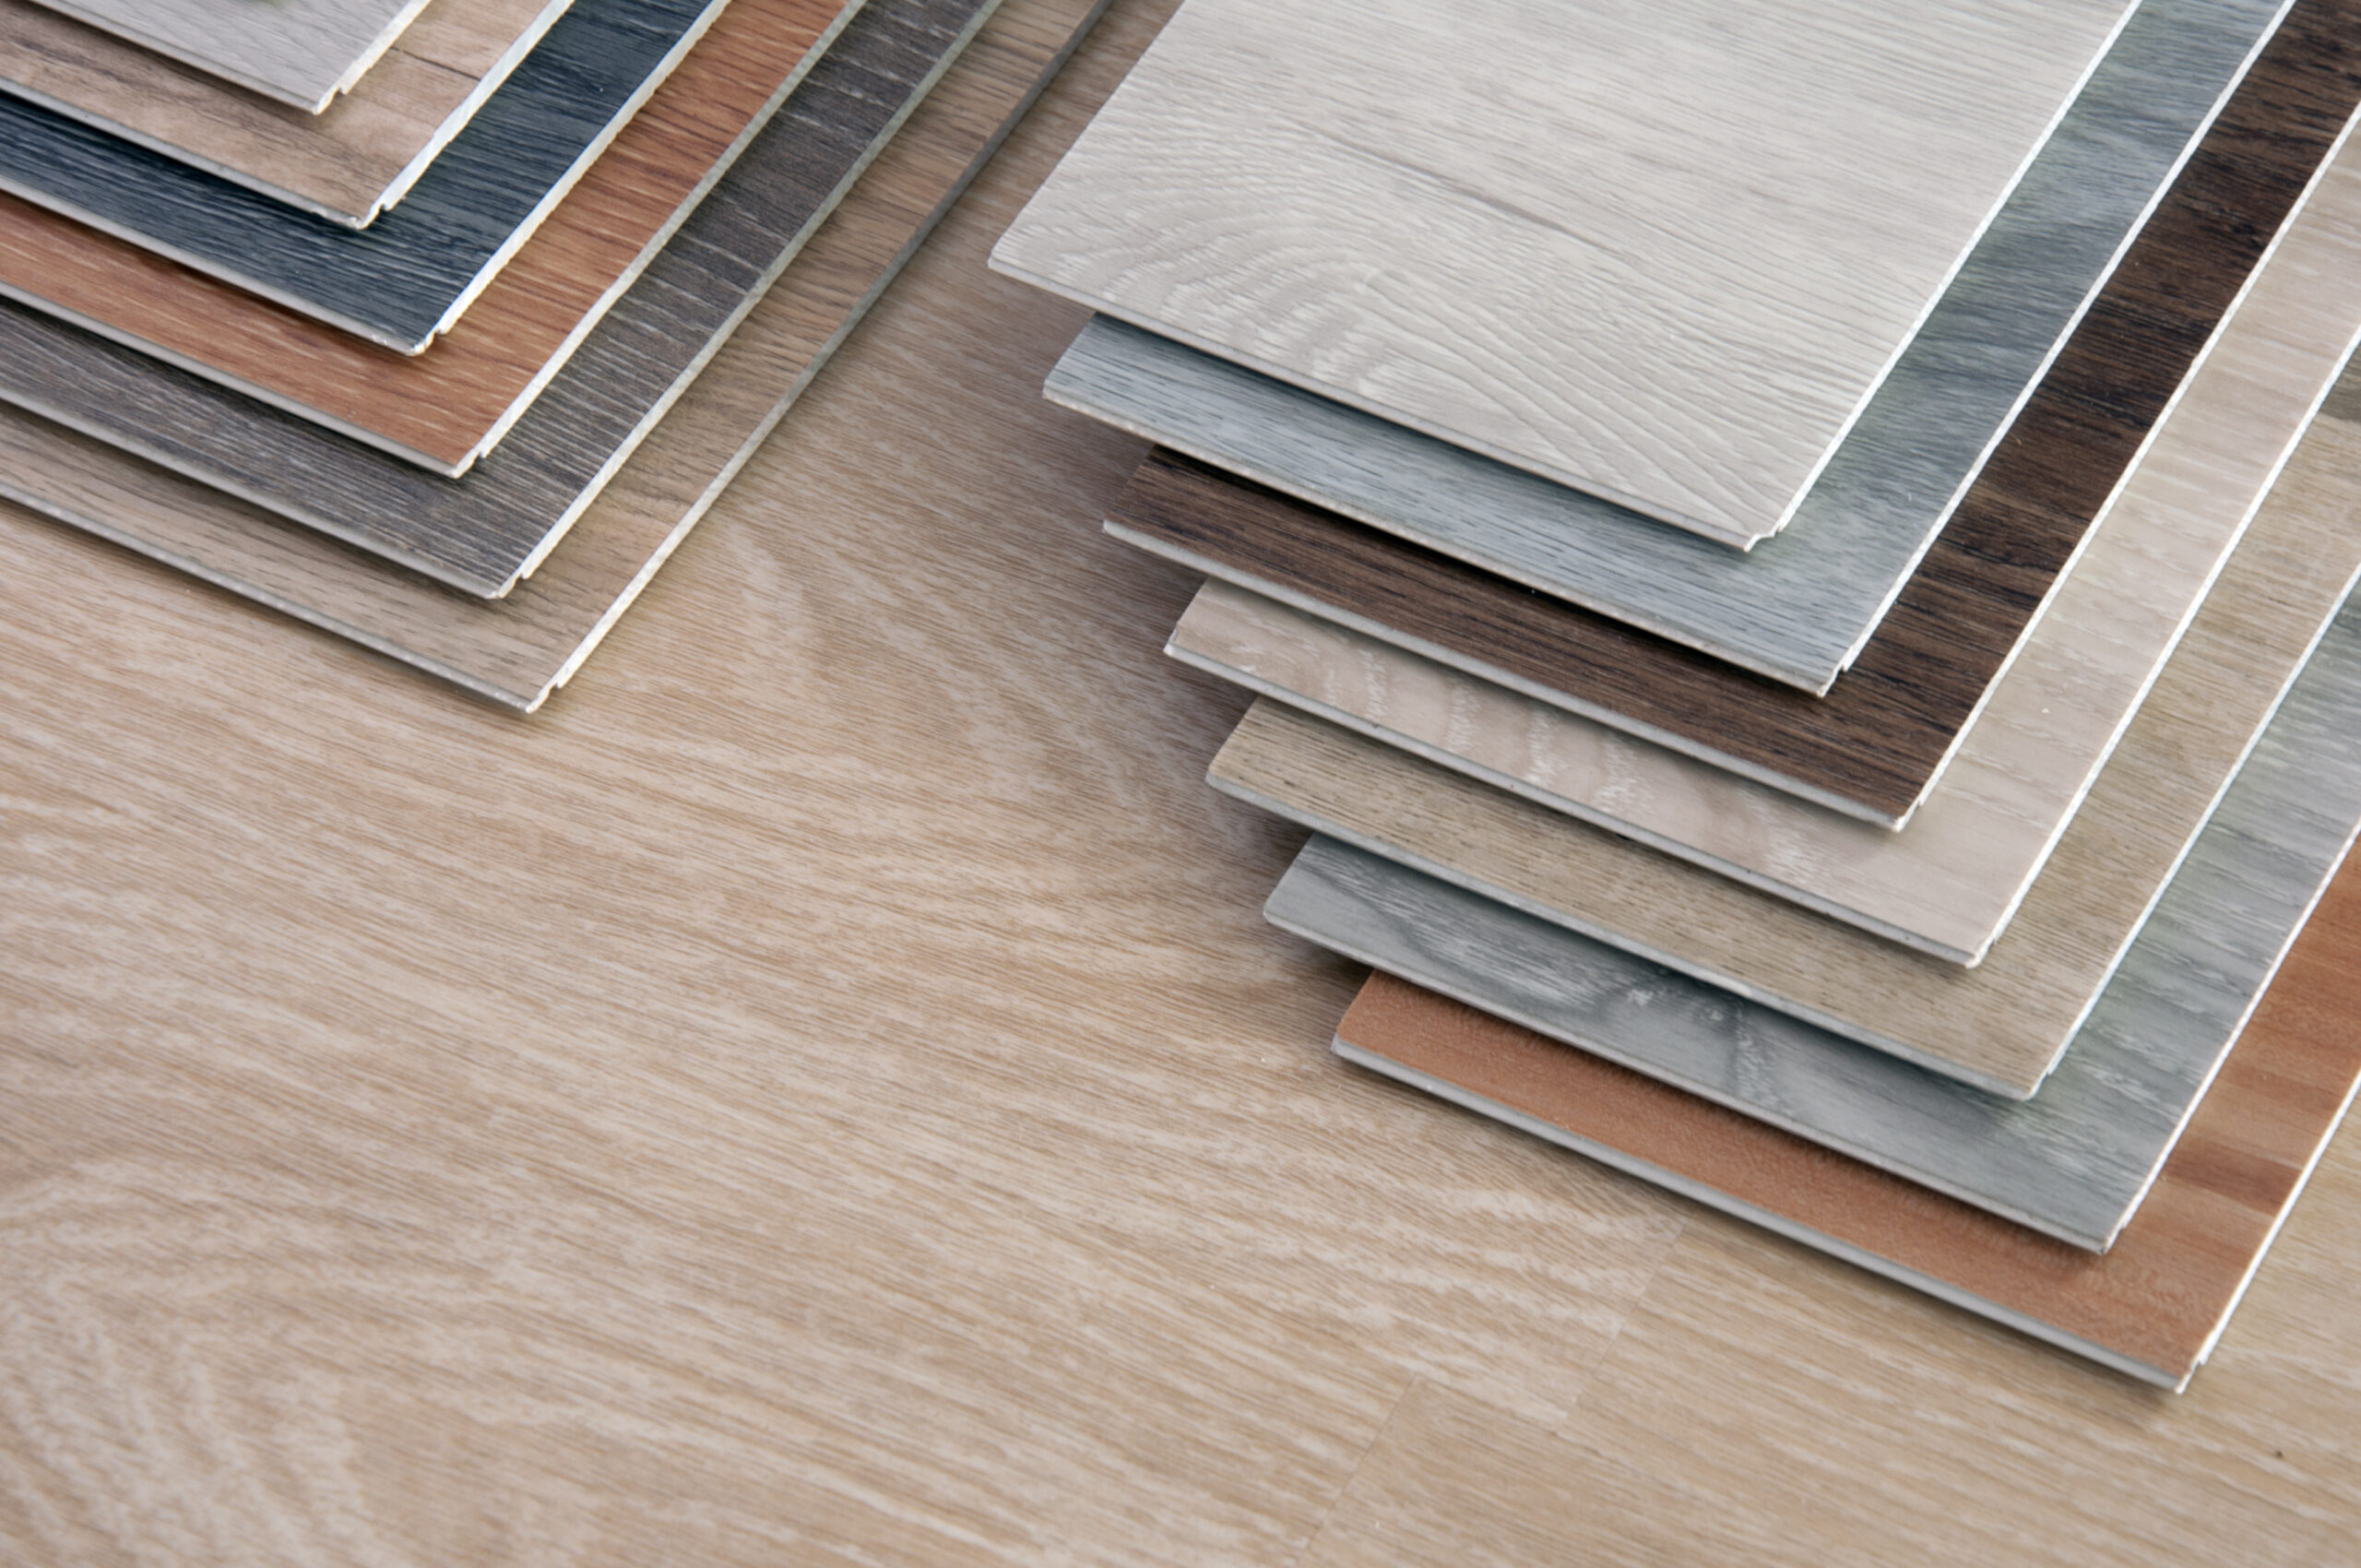 laminate plank samples laid out on floor